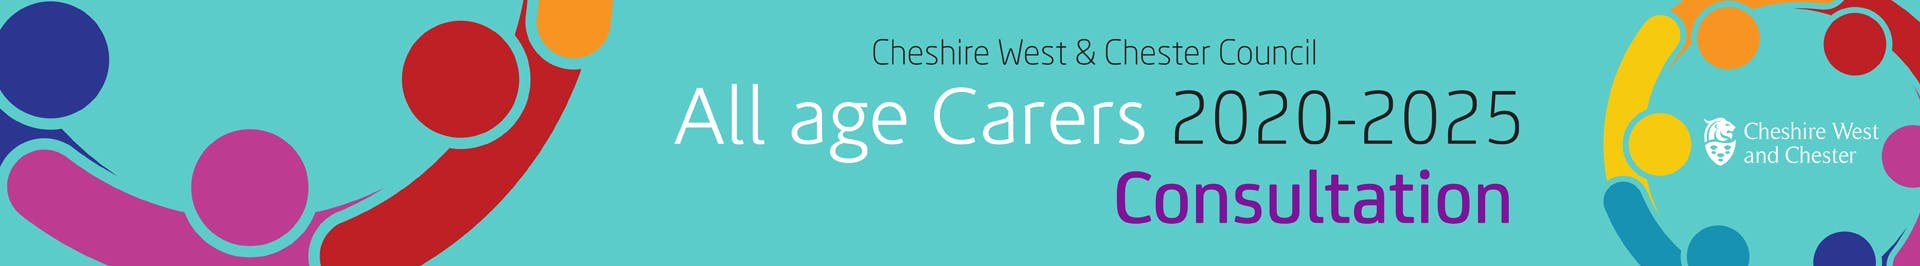 Cheshire West and Chester Council All Age Carers 2020 to 2025 Consultation